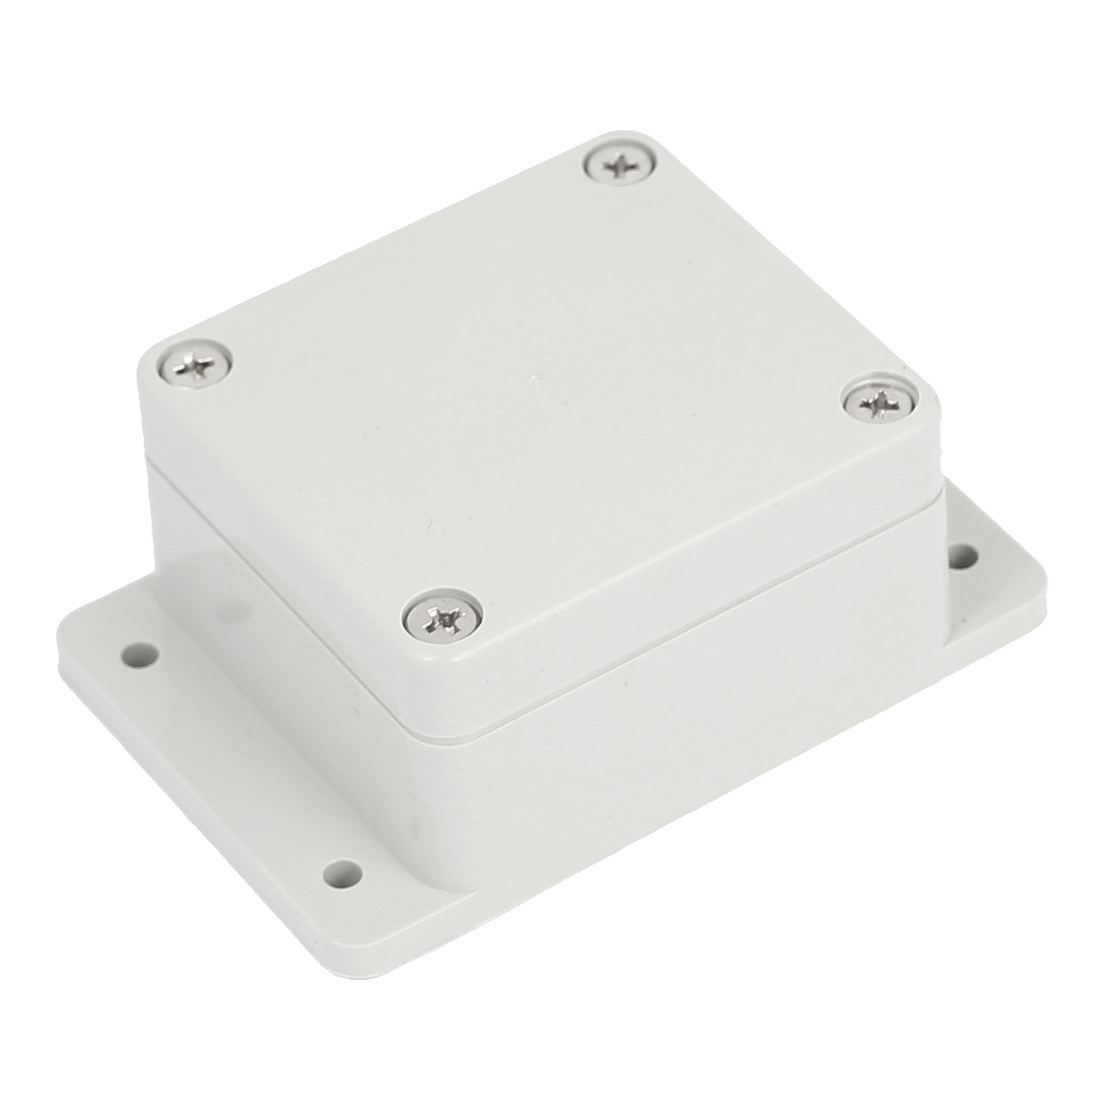 Water Resistant Plastic Project Electronic Enclosure Junction Box 89mmx60mmx36mm